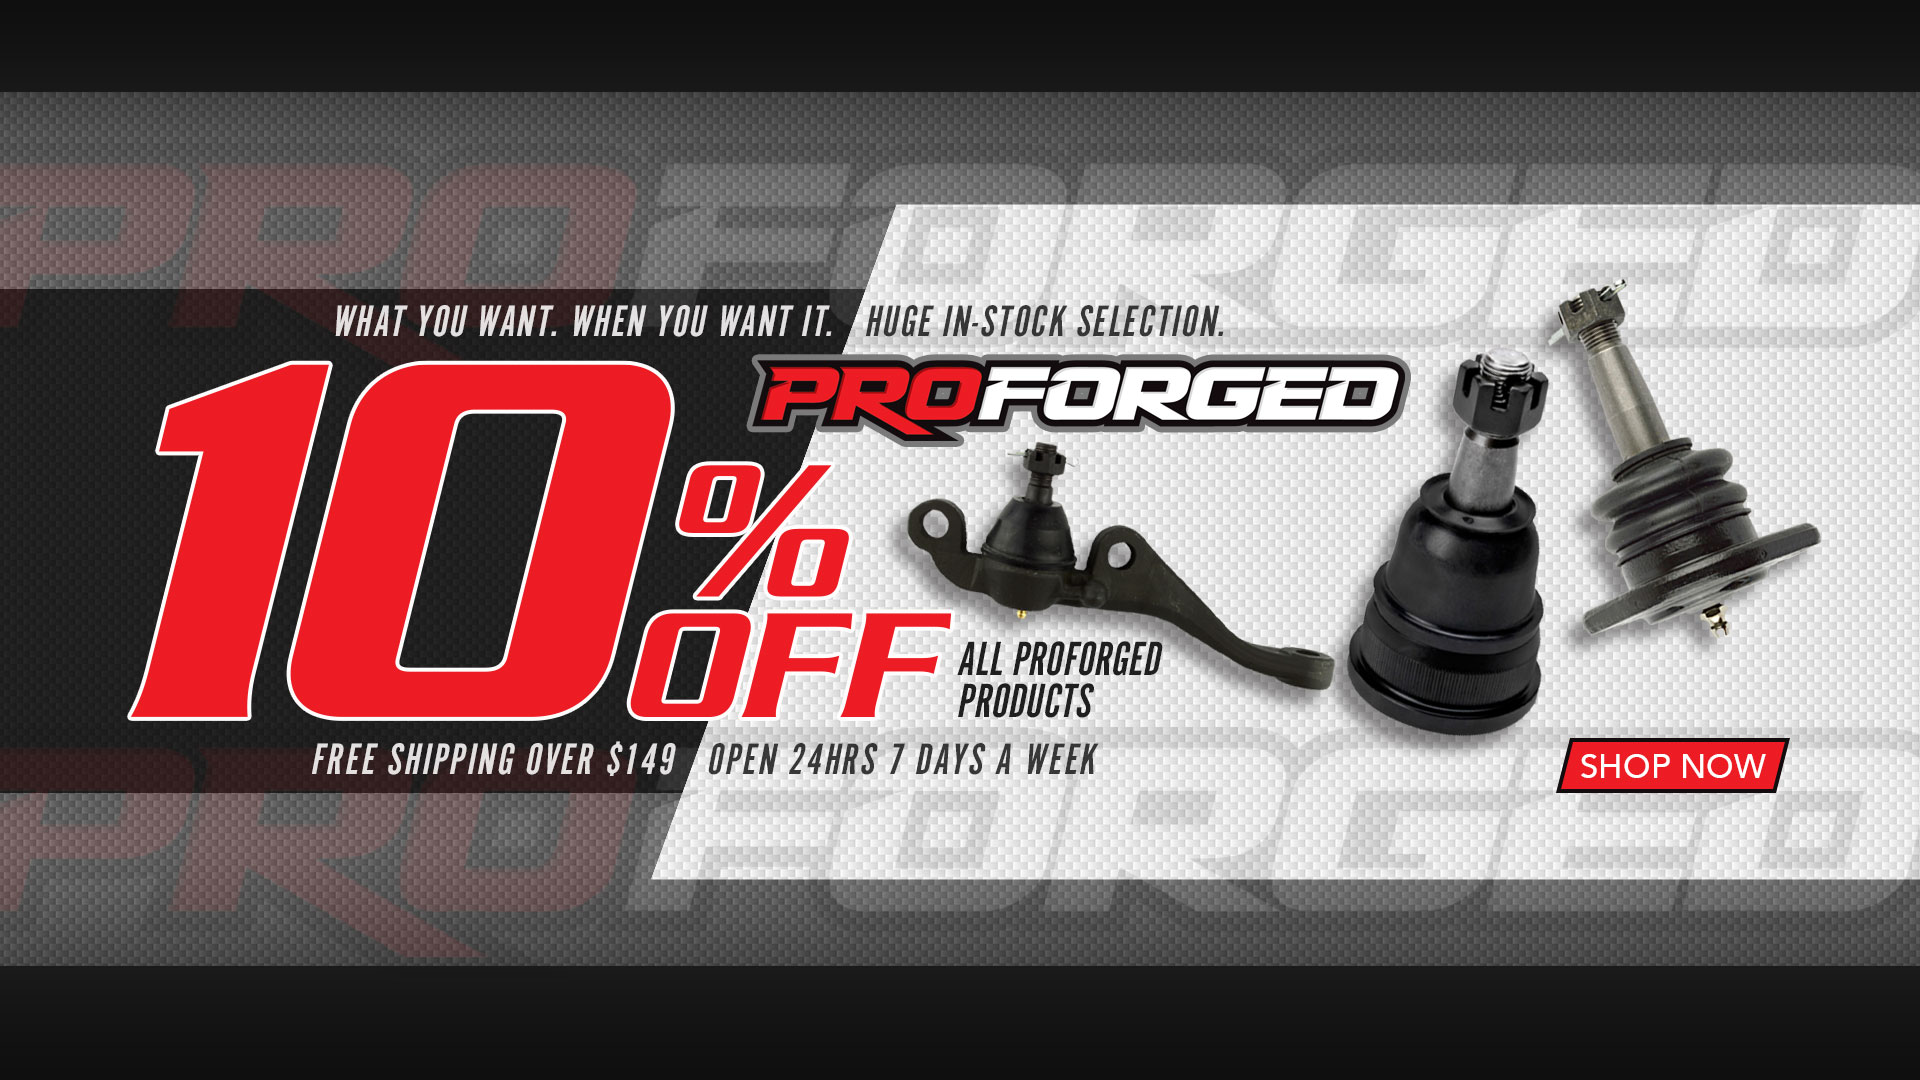 Save 10% on ALL Proforged Products